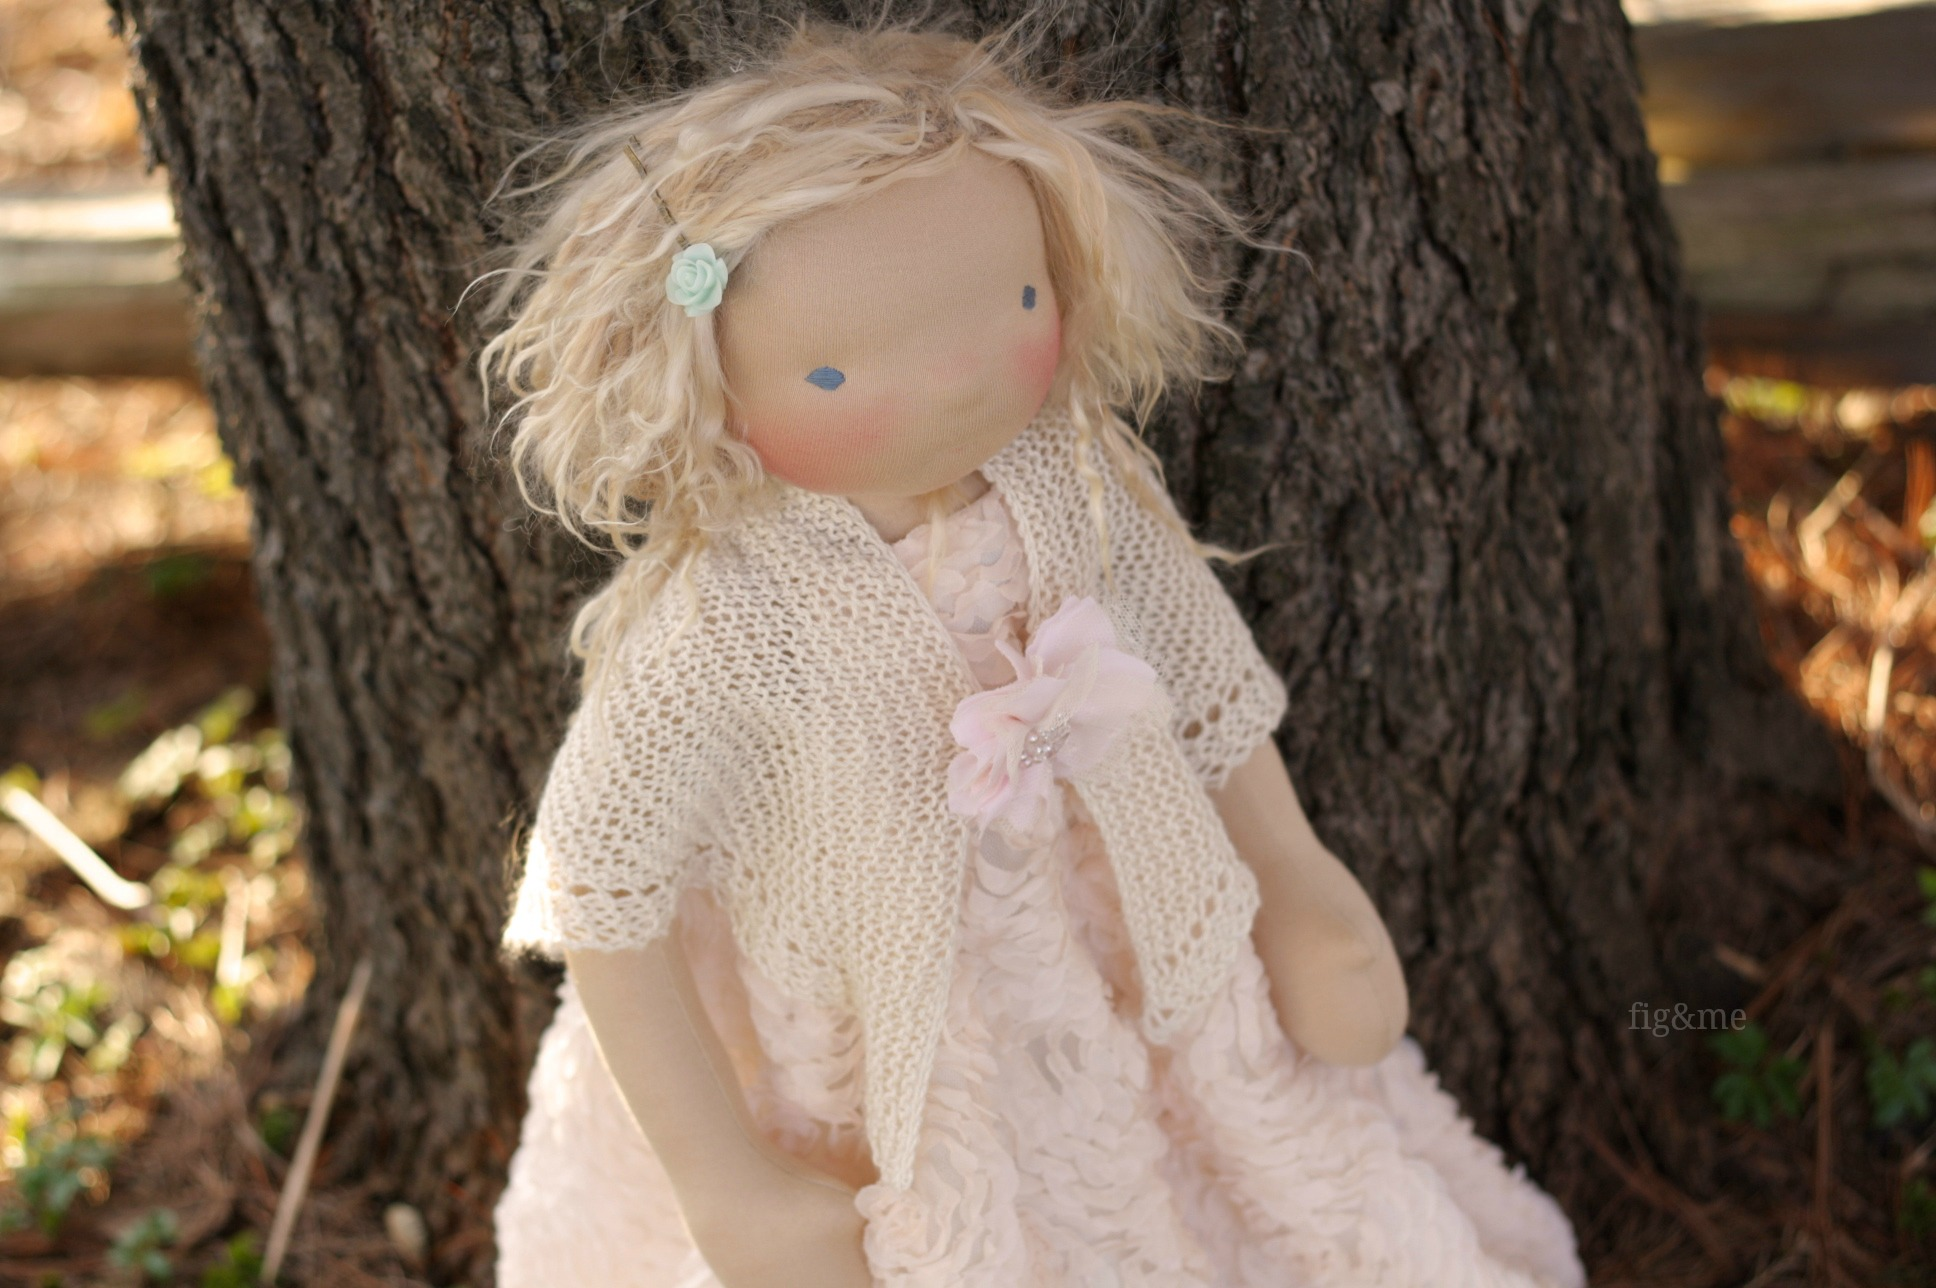 In her silky shawl, by Fig&me